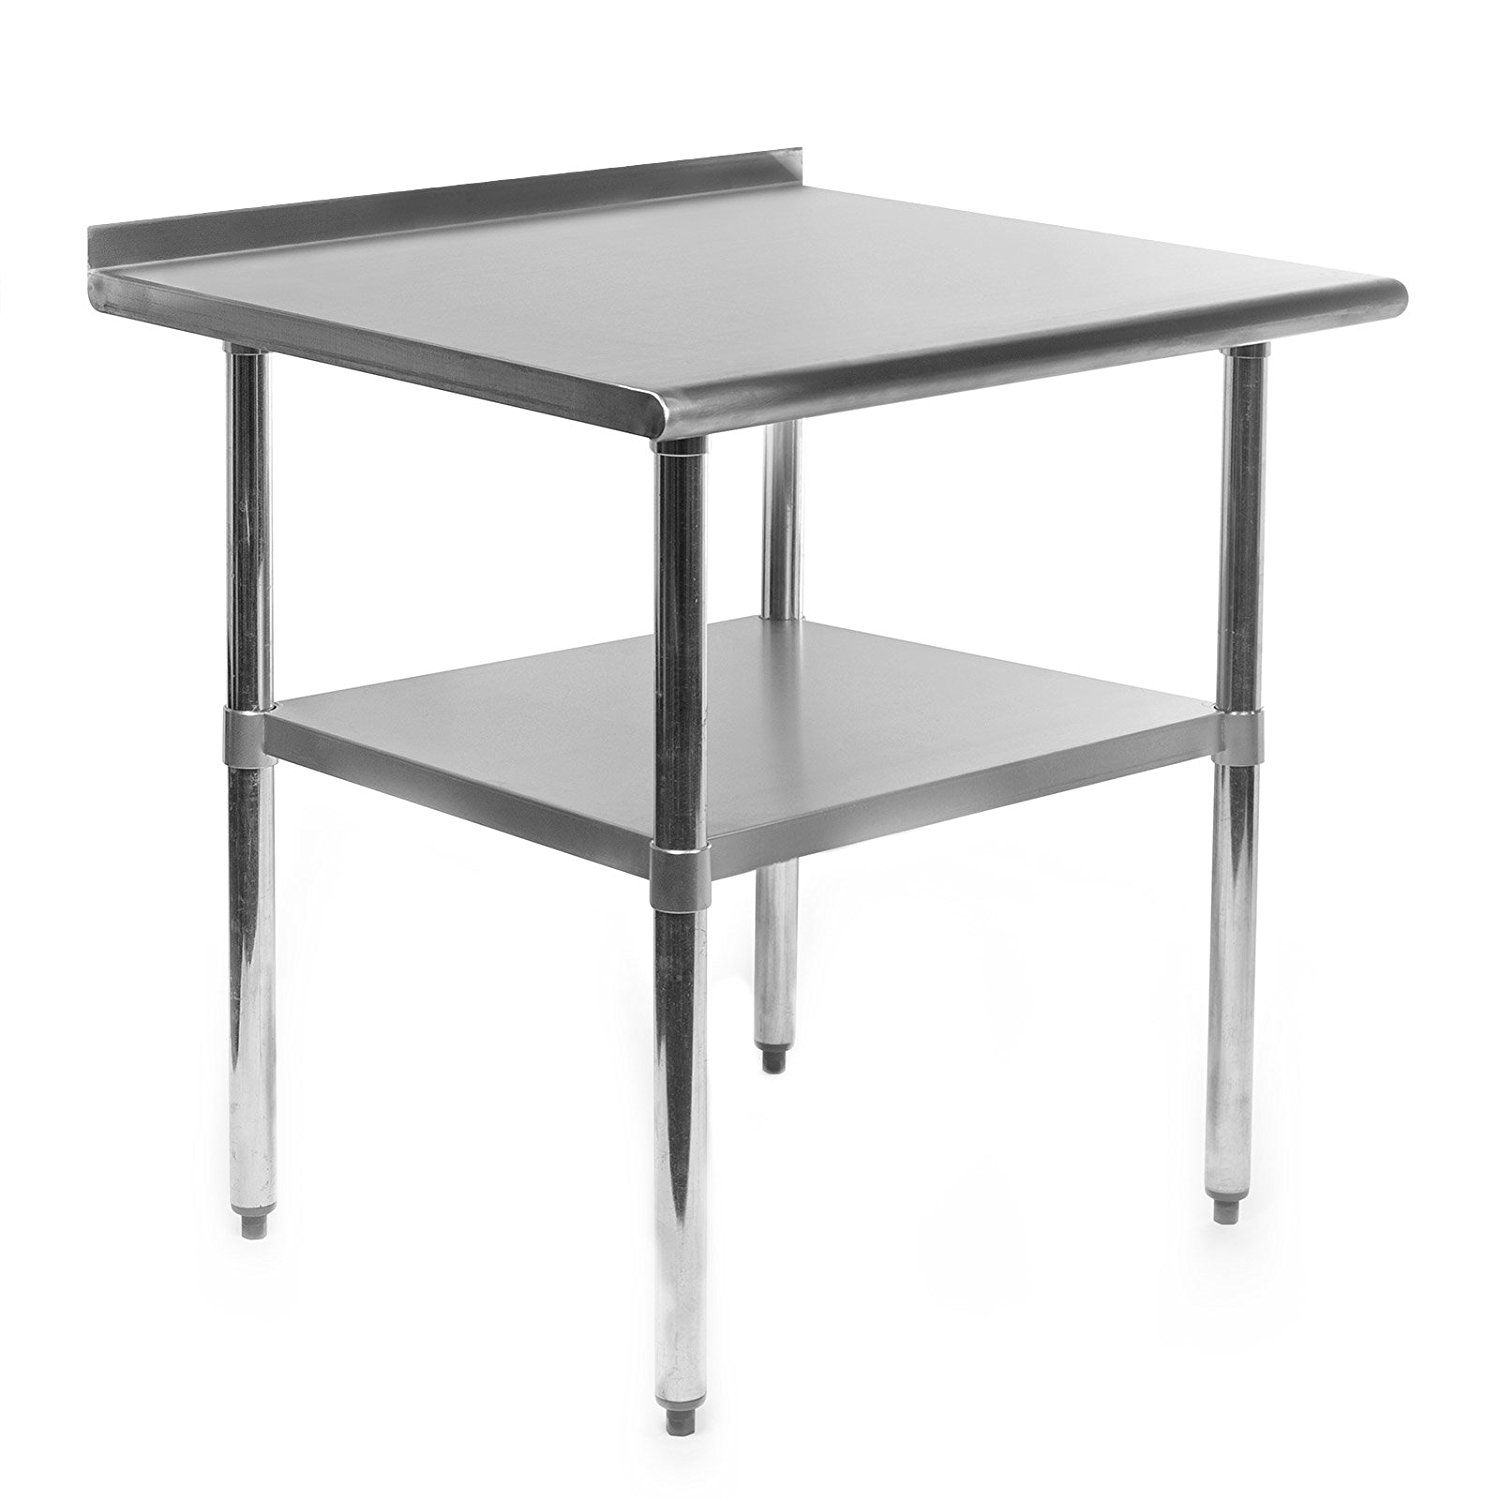 Kitchen: Stainless Steel Work Table 36 X 24 Inches Prep Work Table ...